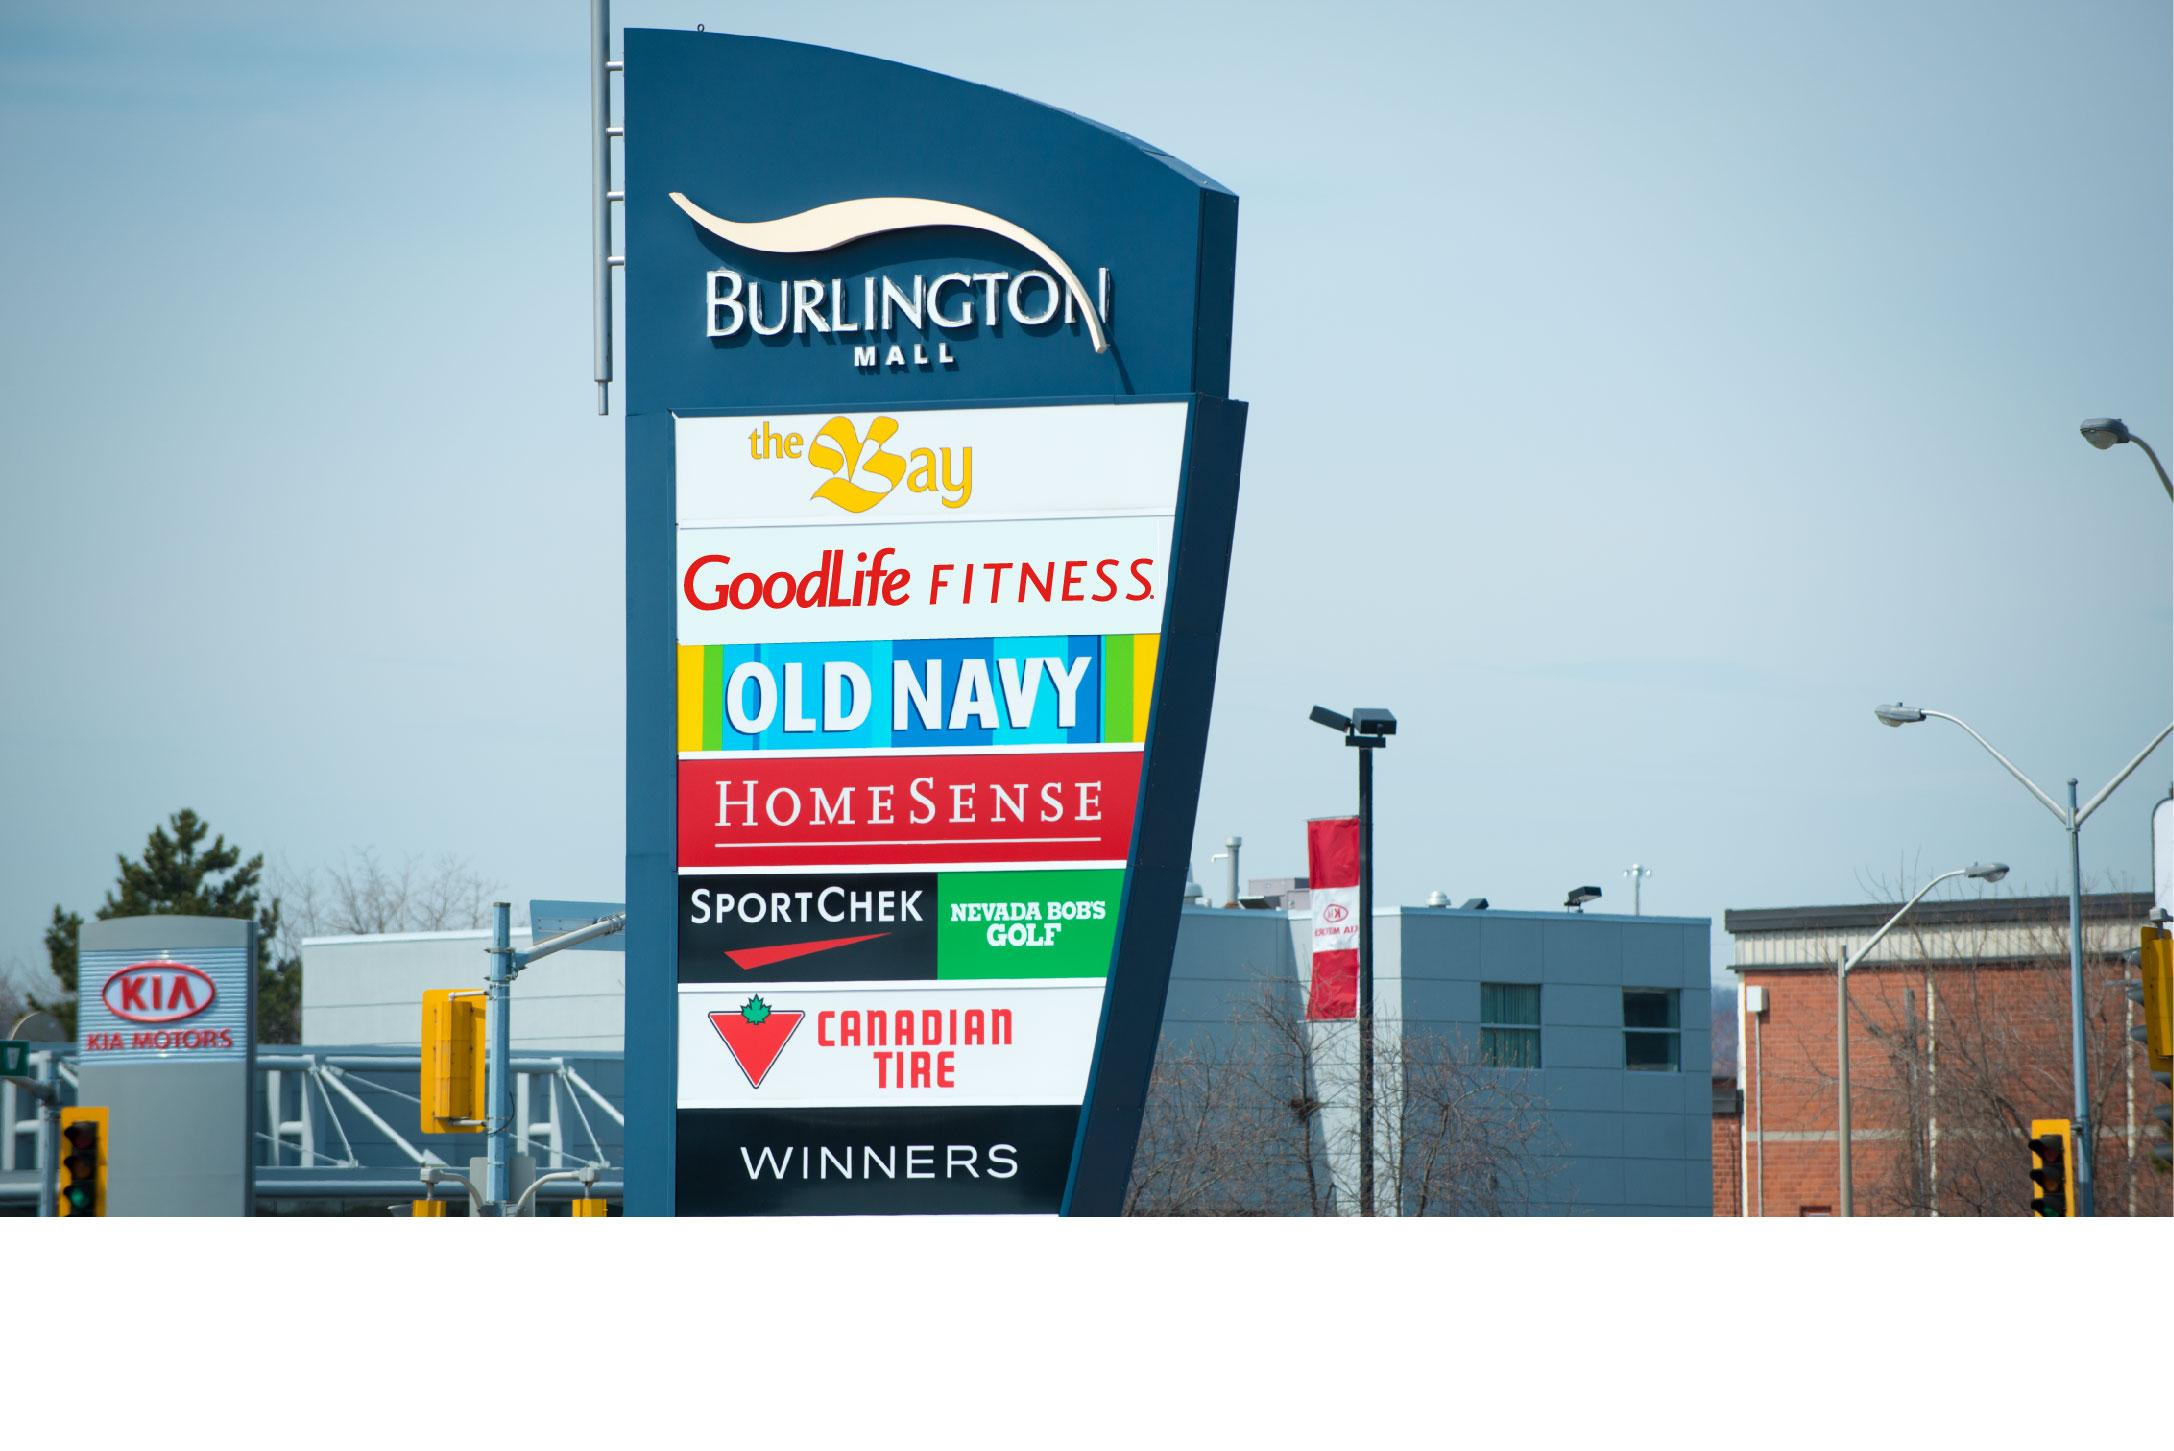 $ 60M MAKEOVER FOR BURLINGTON MALL!